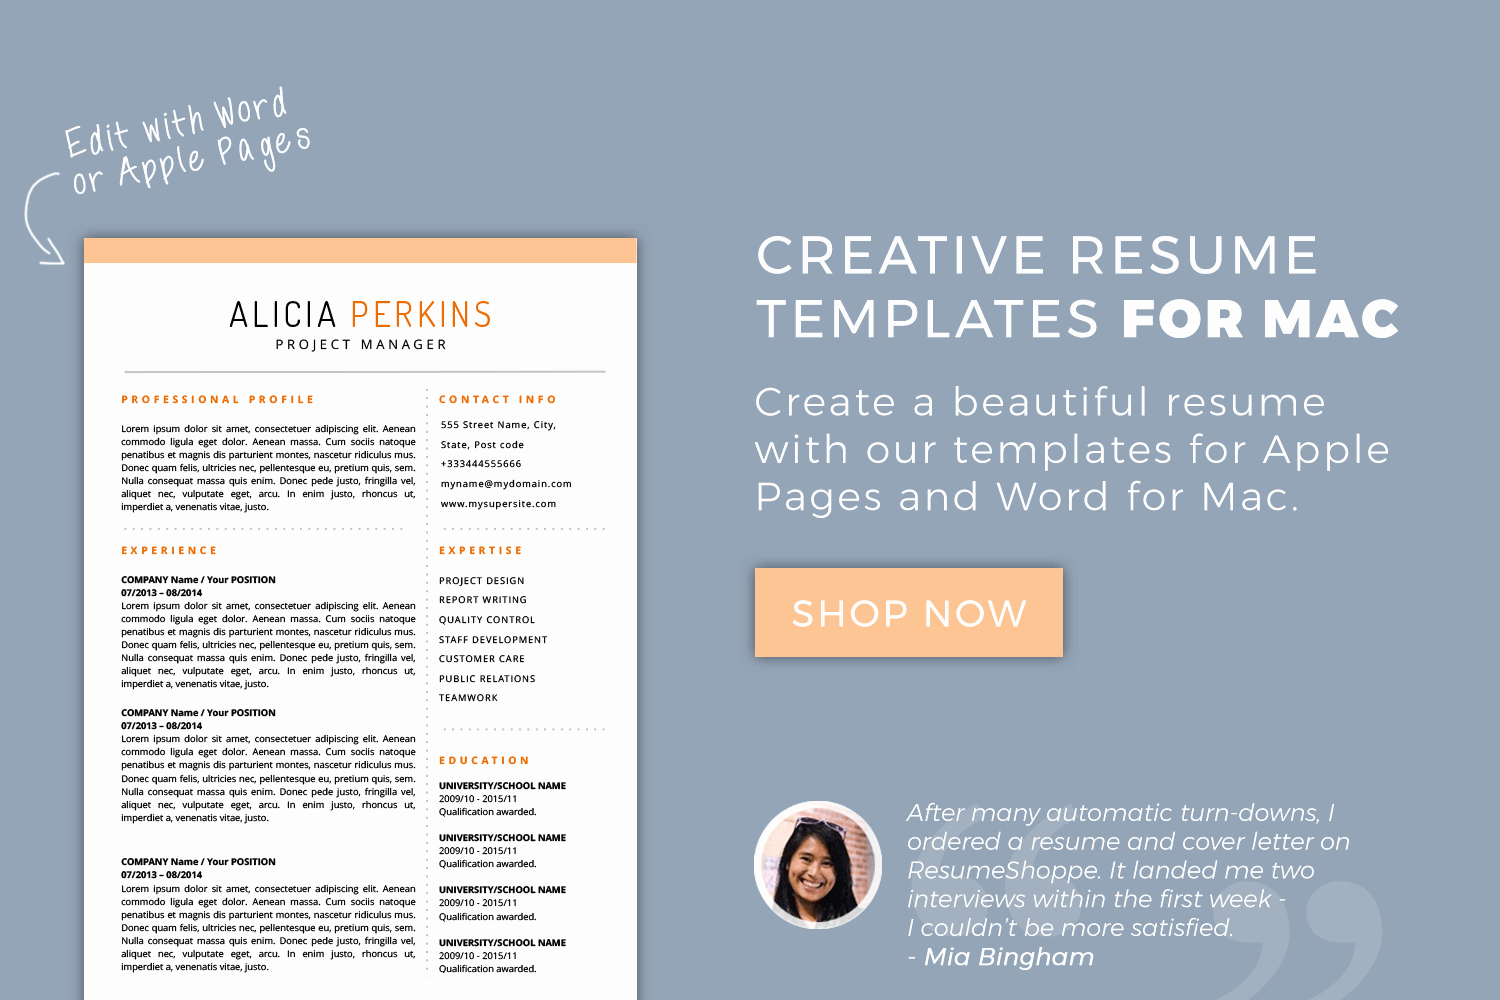 Resume Templates for Mac Word & Apple Pages Instant